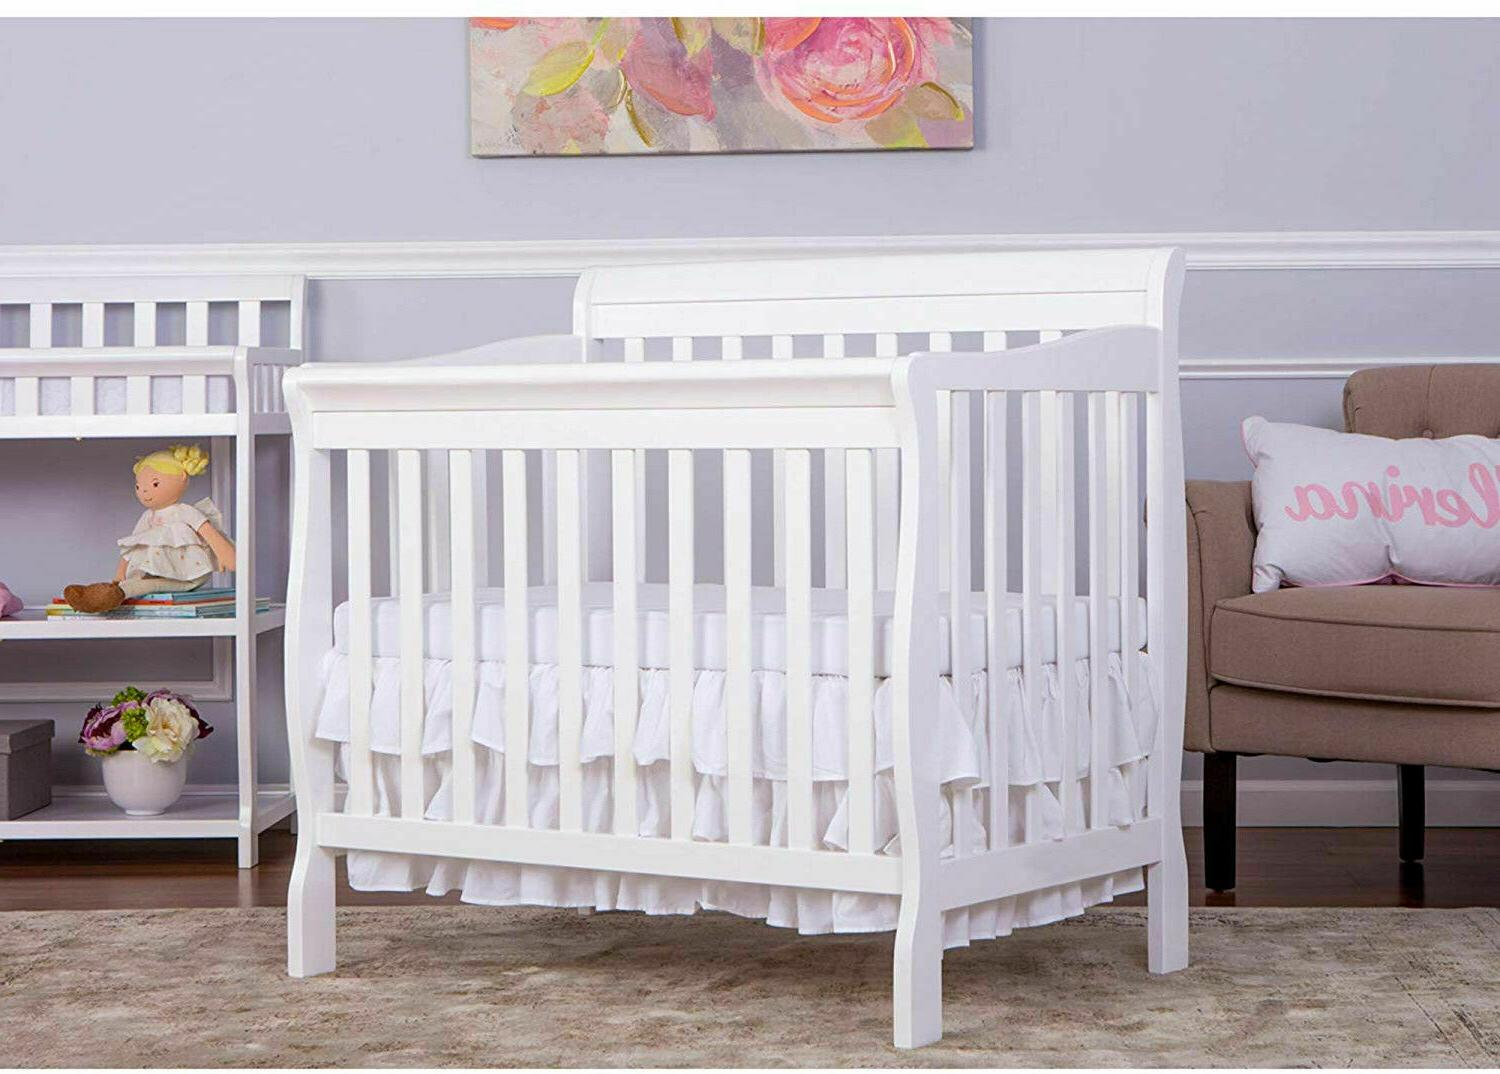 Baby Crib Me 4 1 Convertible Nursery Furniture Day Bed